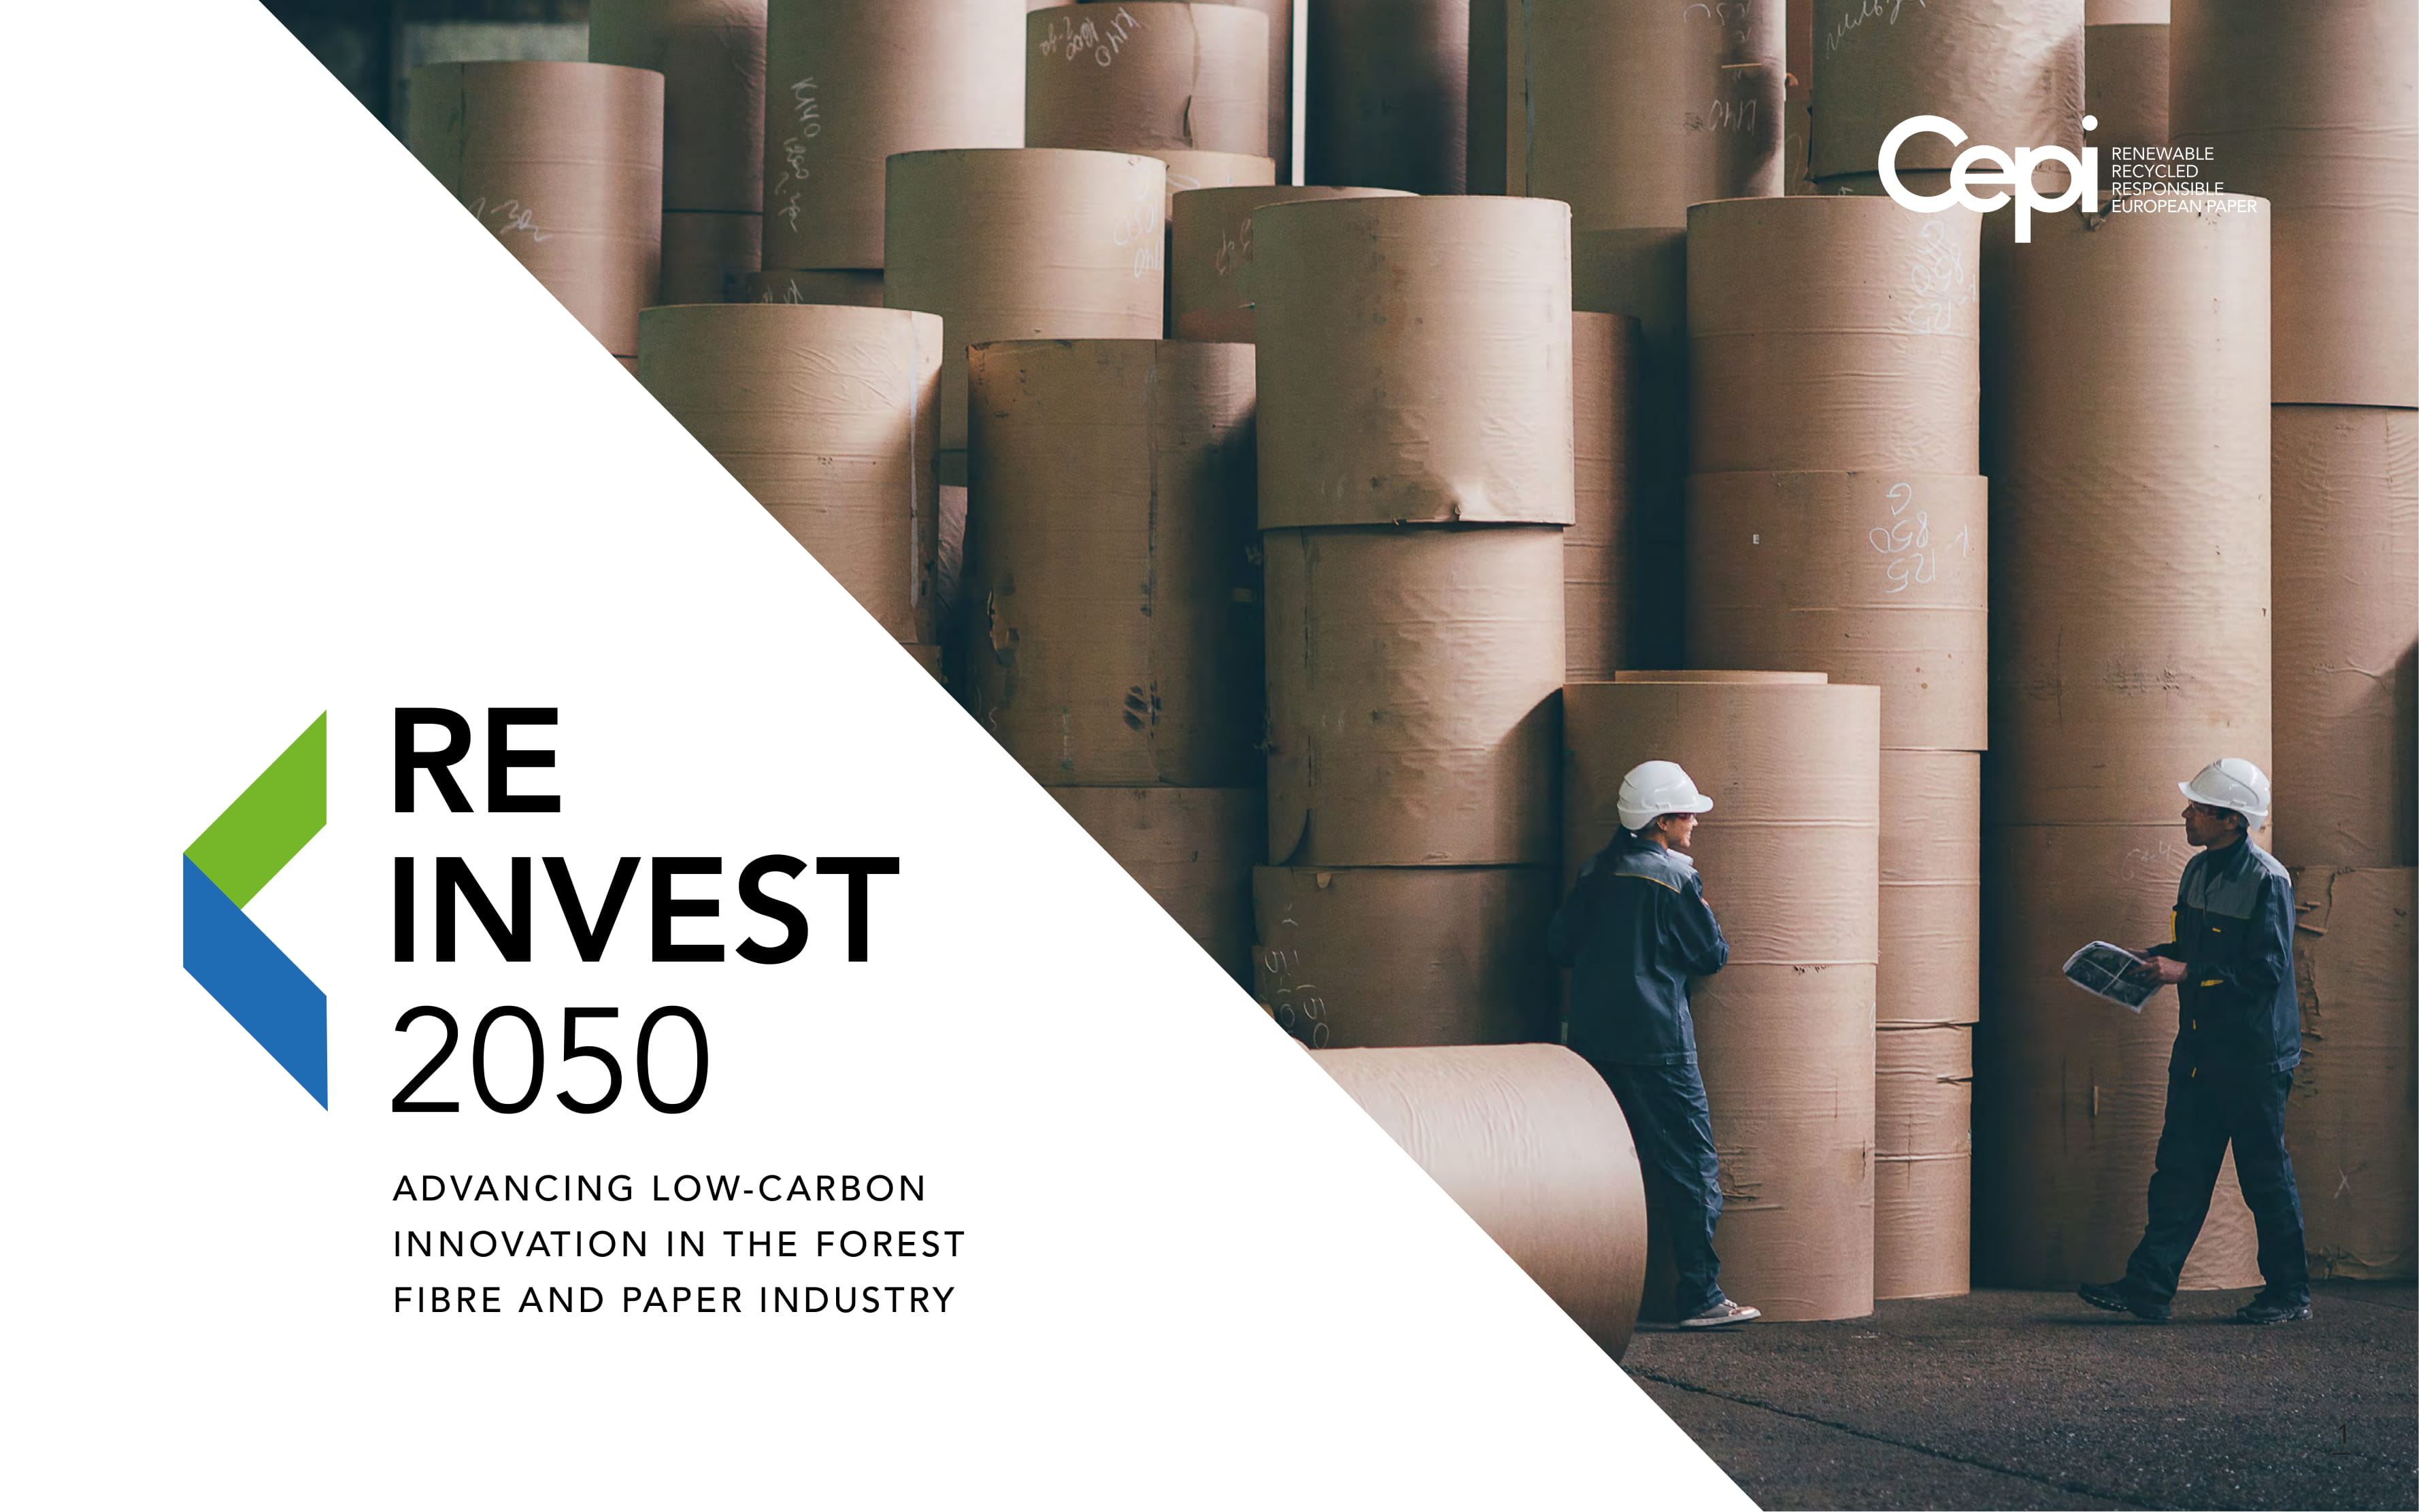 REINVEST2050 demonstrates industry commitment to support climate neutrality